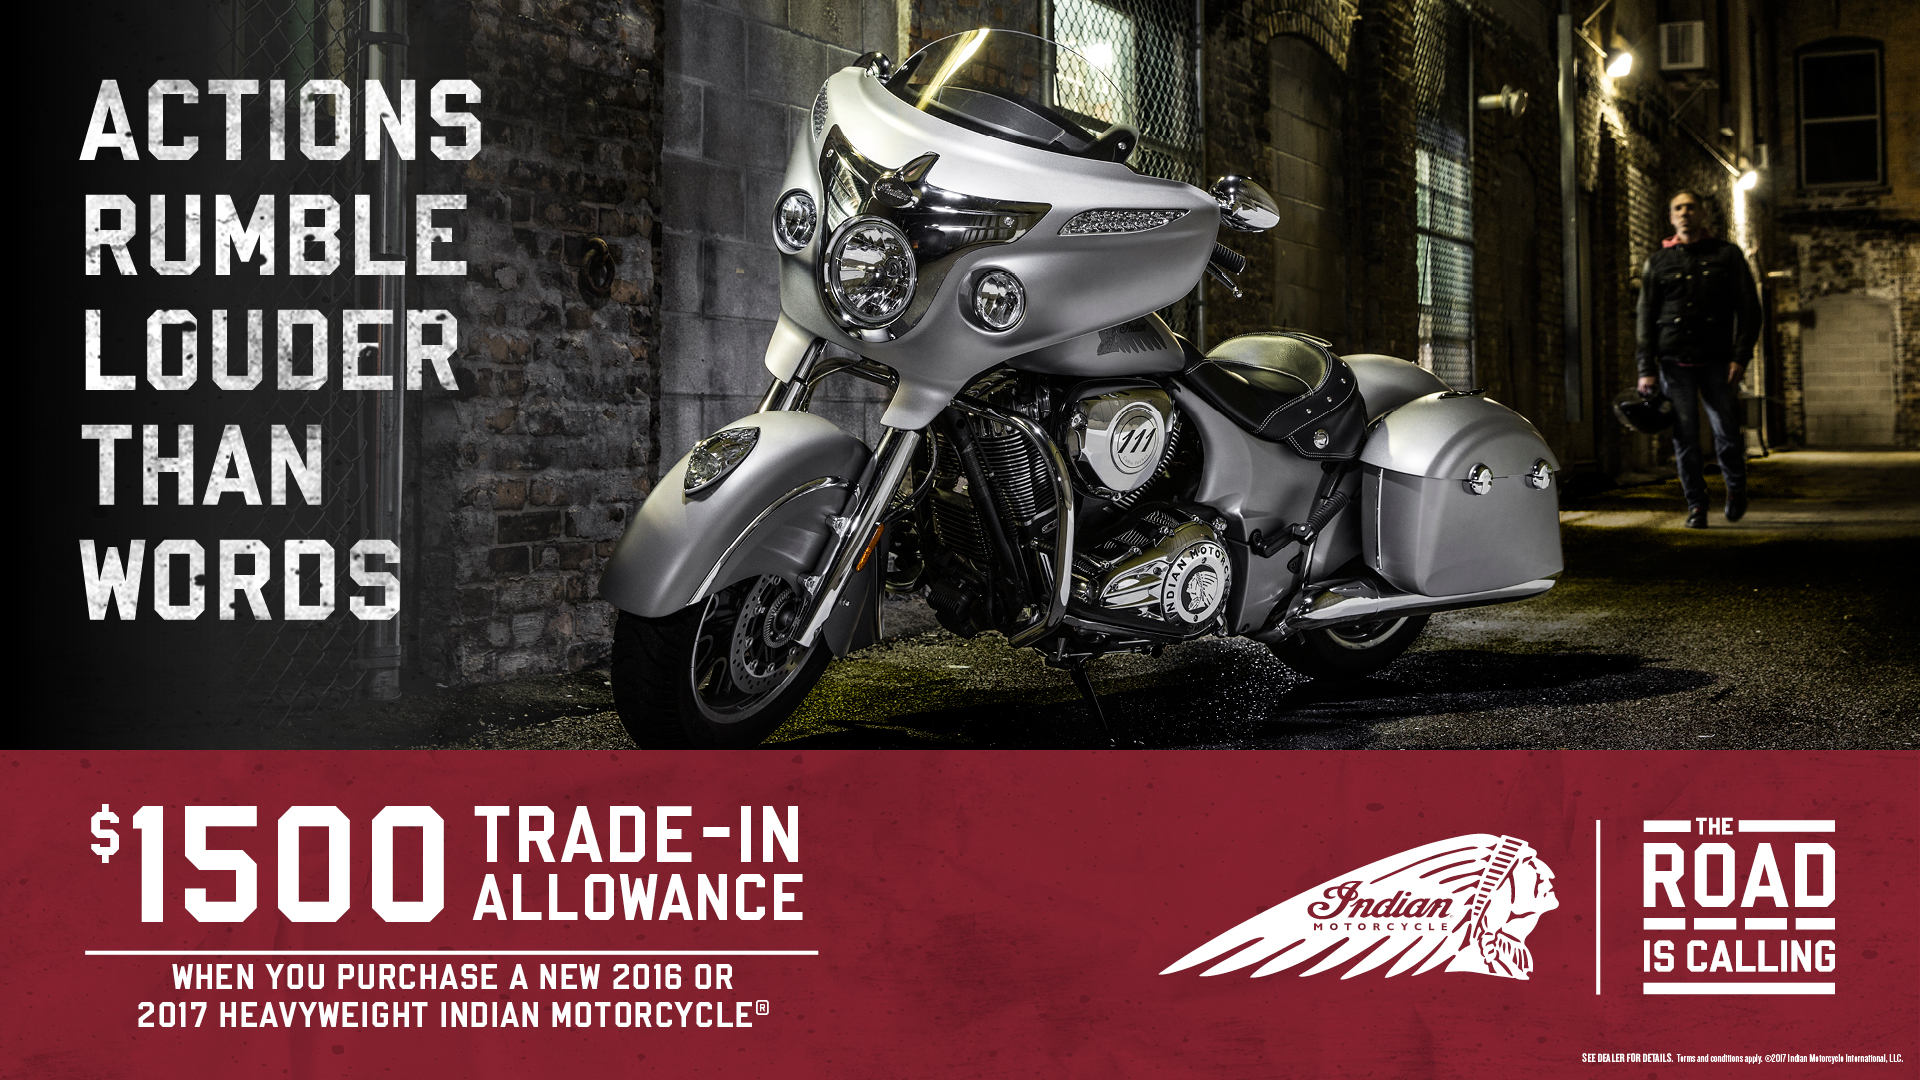 $1,500 trade-in allowance when you purchase a new 2016 or 2017 heavyweight Indian Motorcycle.